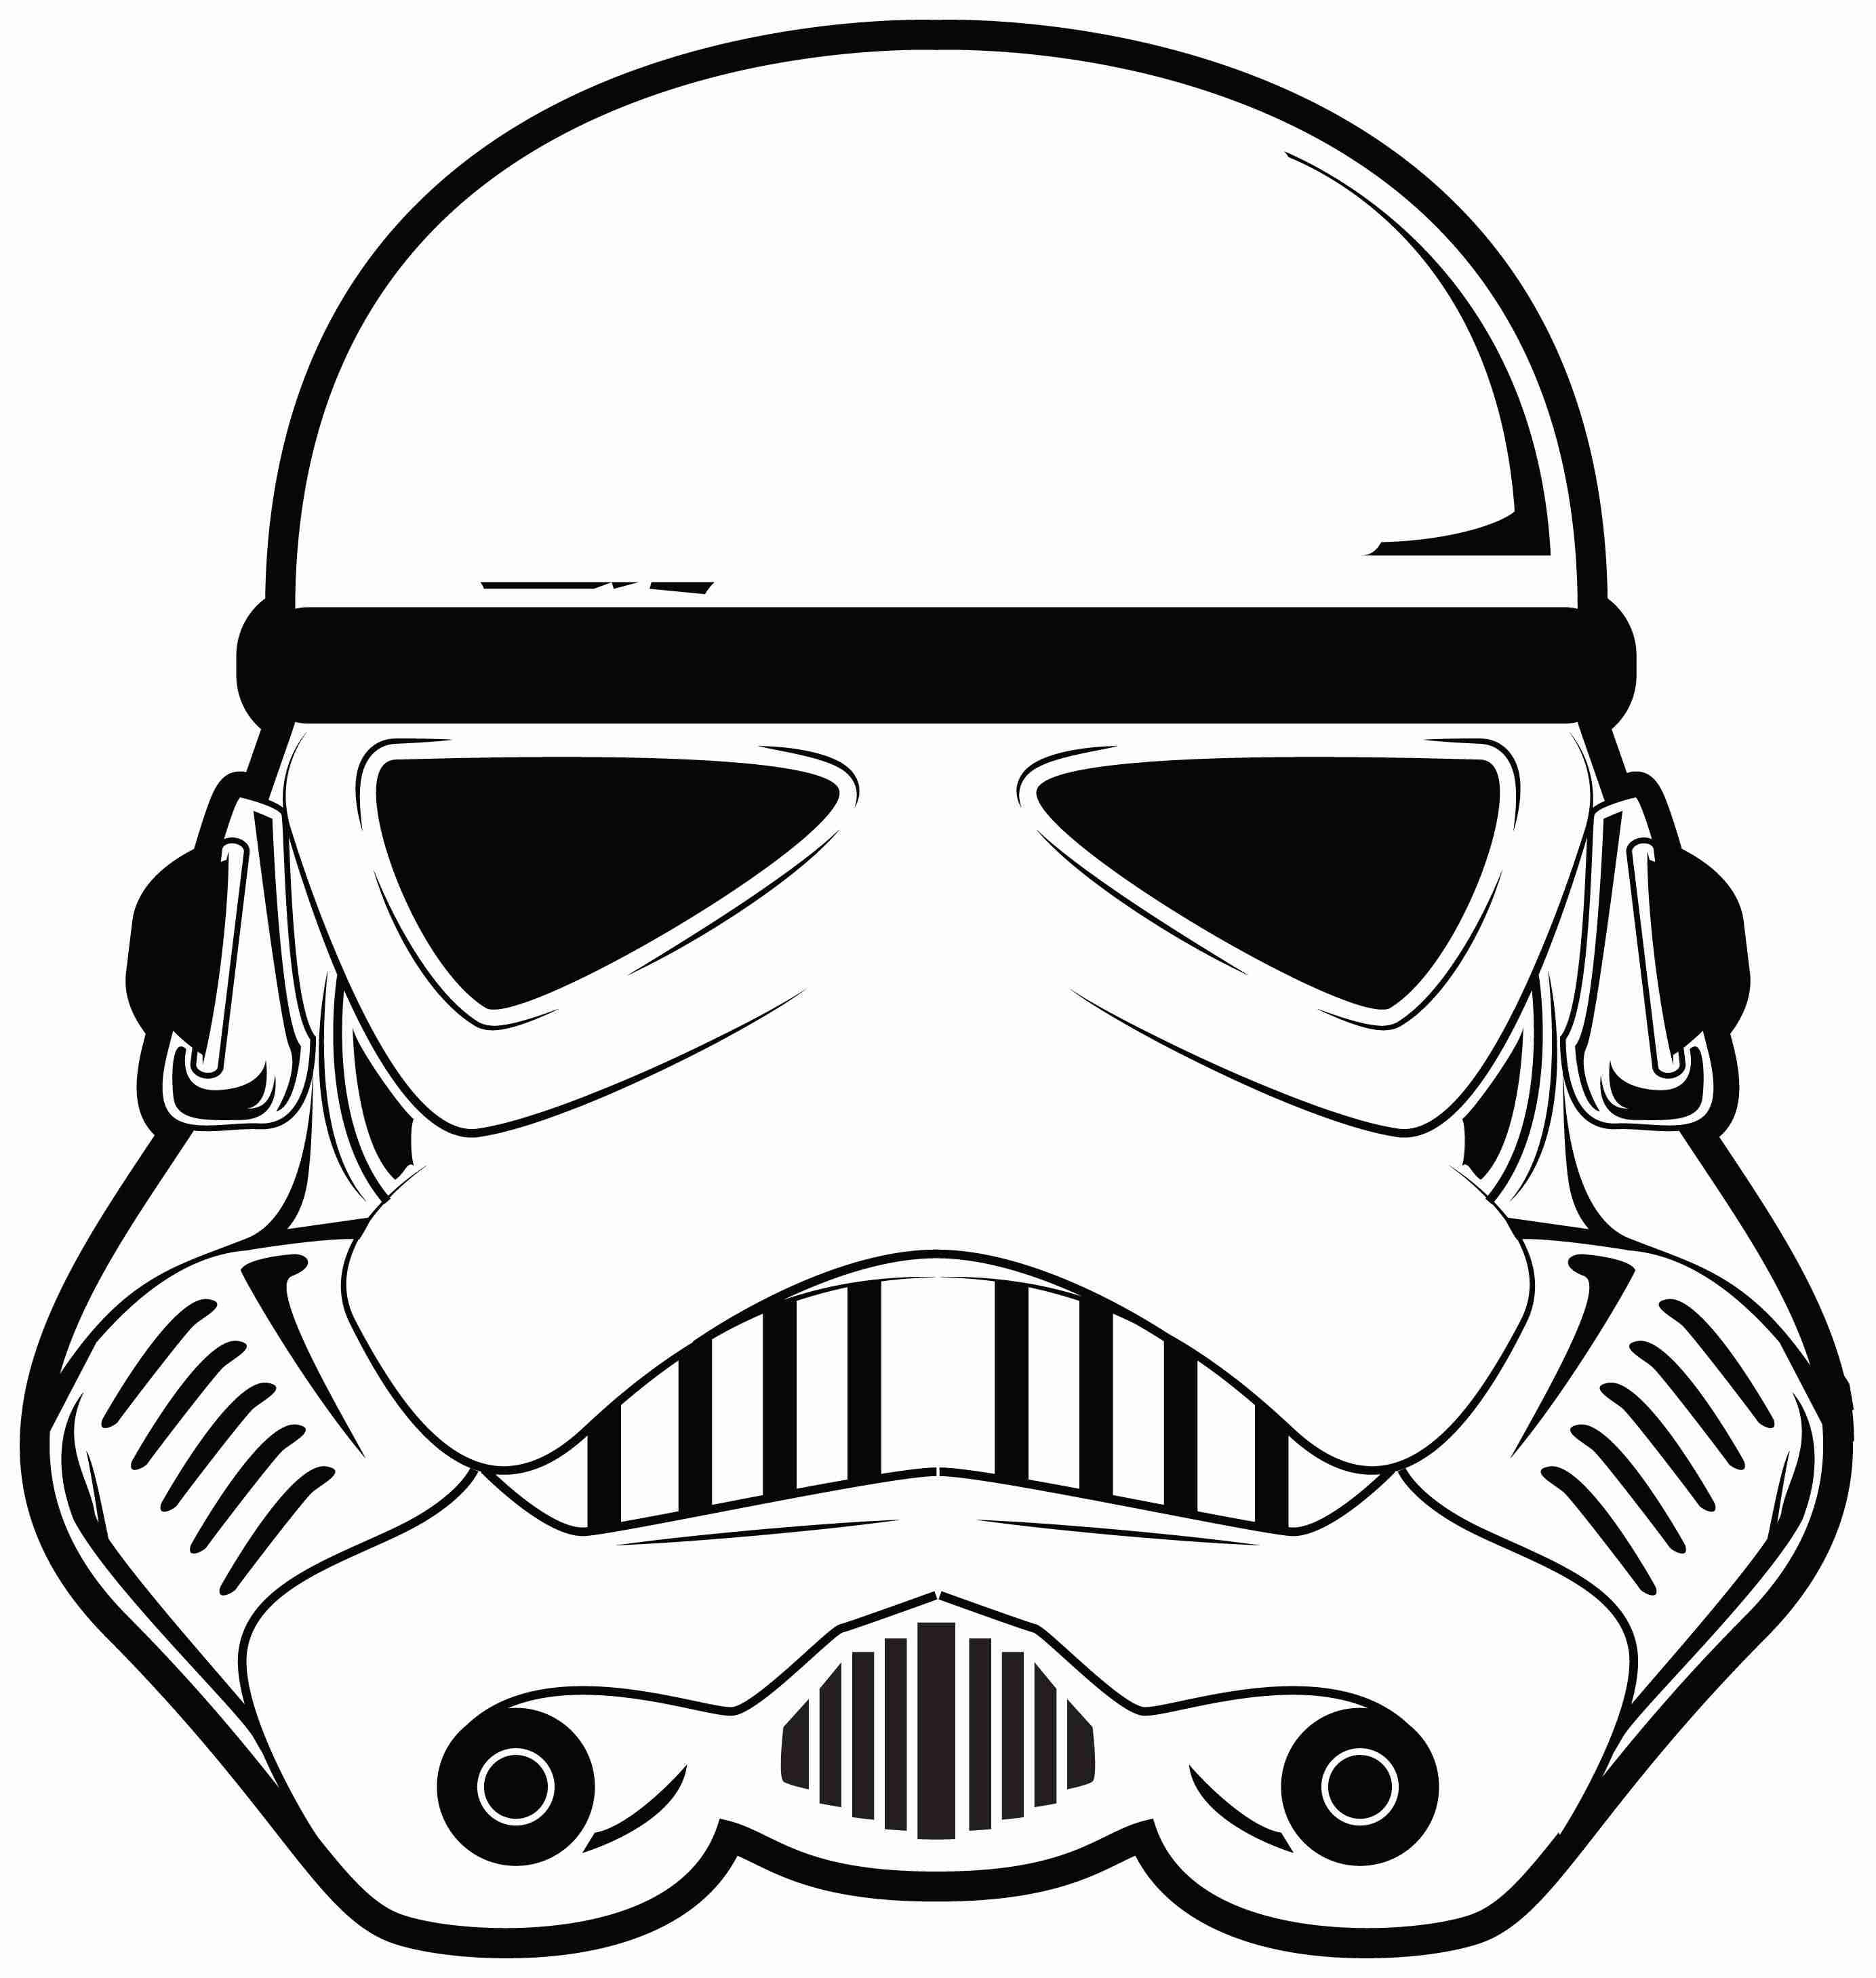 Printable star wars clipart black and white royalty free stock Starwars clipart - 53 transparent clip arts, images and ... royalty free stock